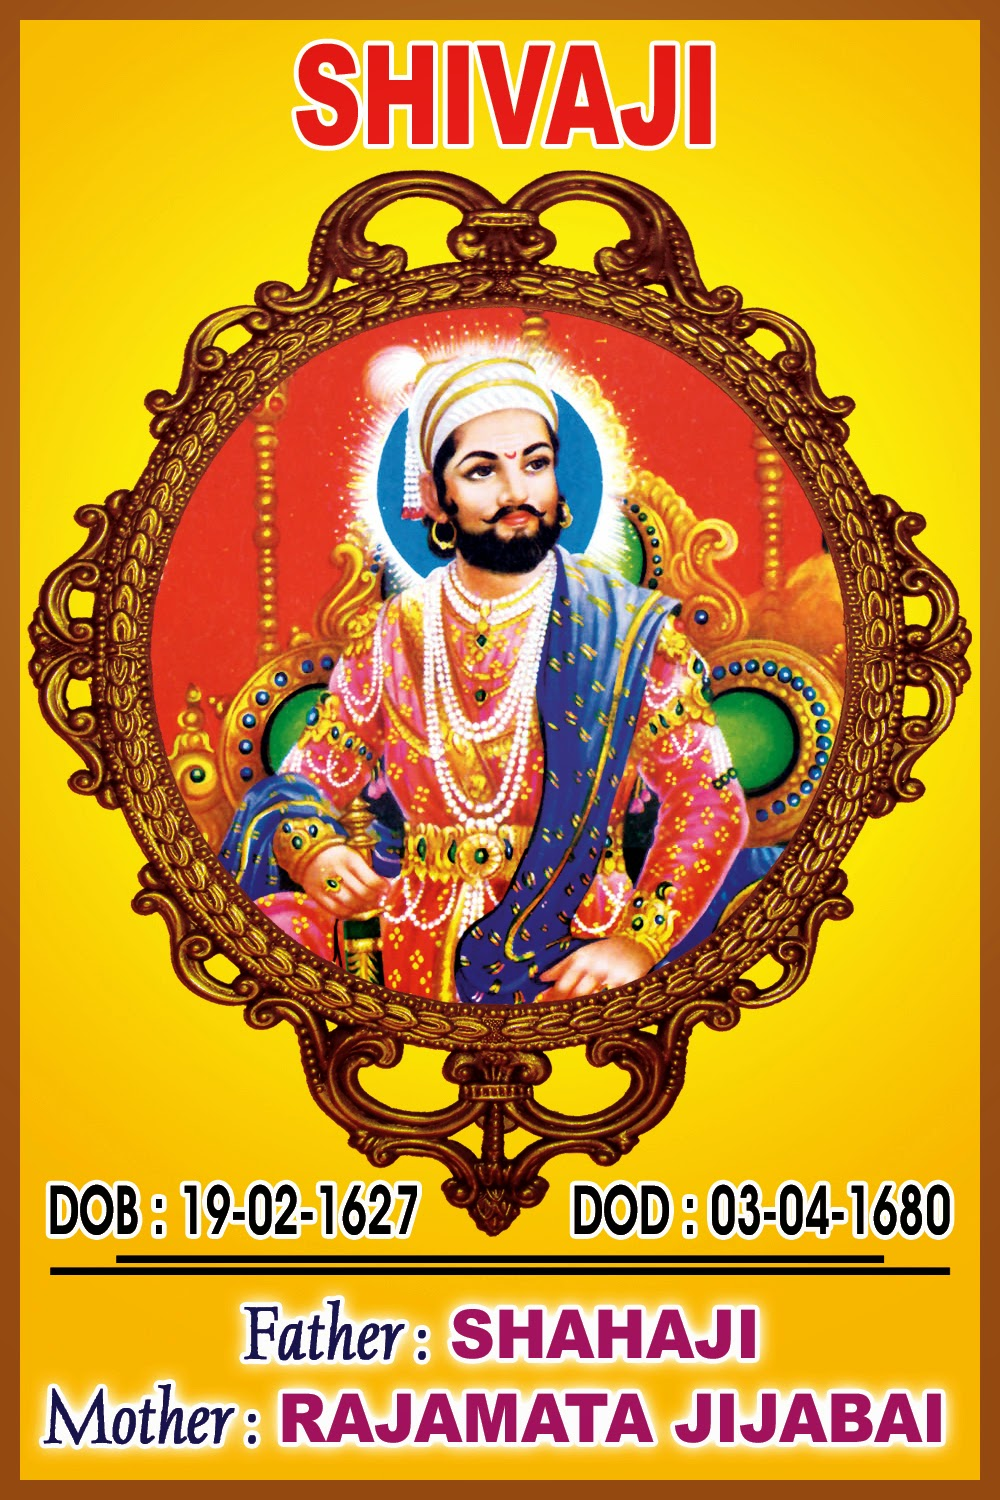 king-chatrapathi-shivaji-image-with-names-naveengfx.com